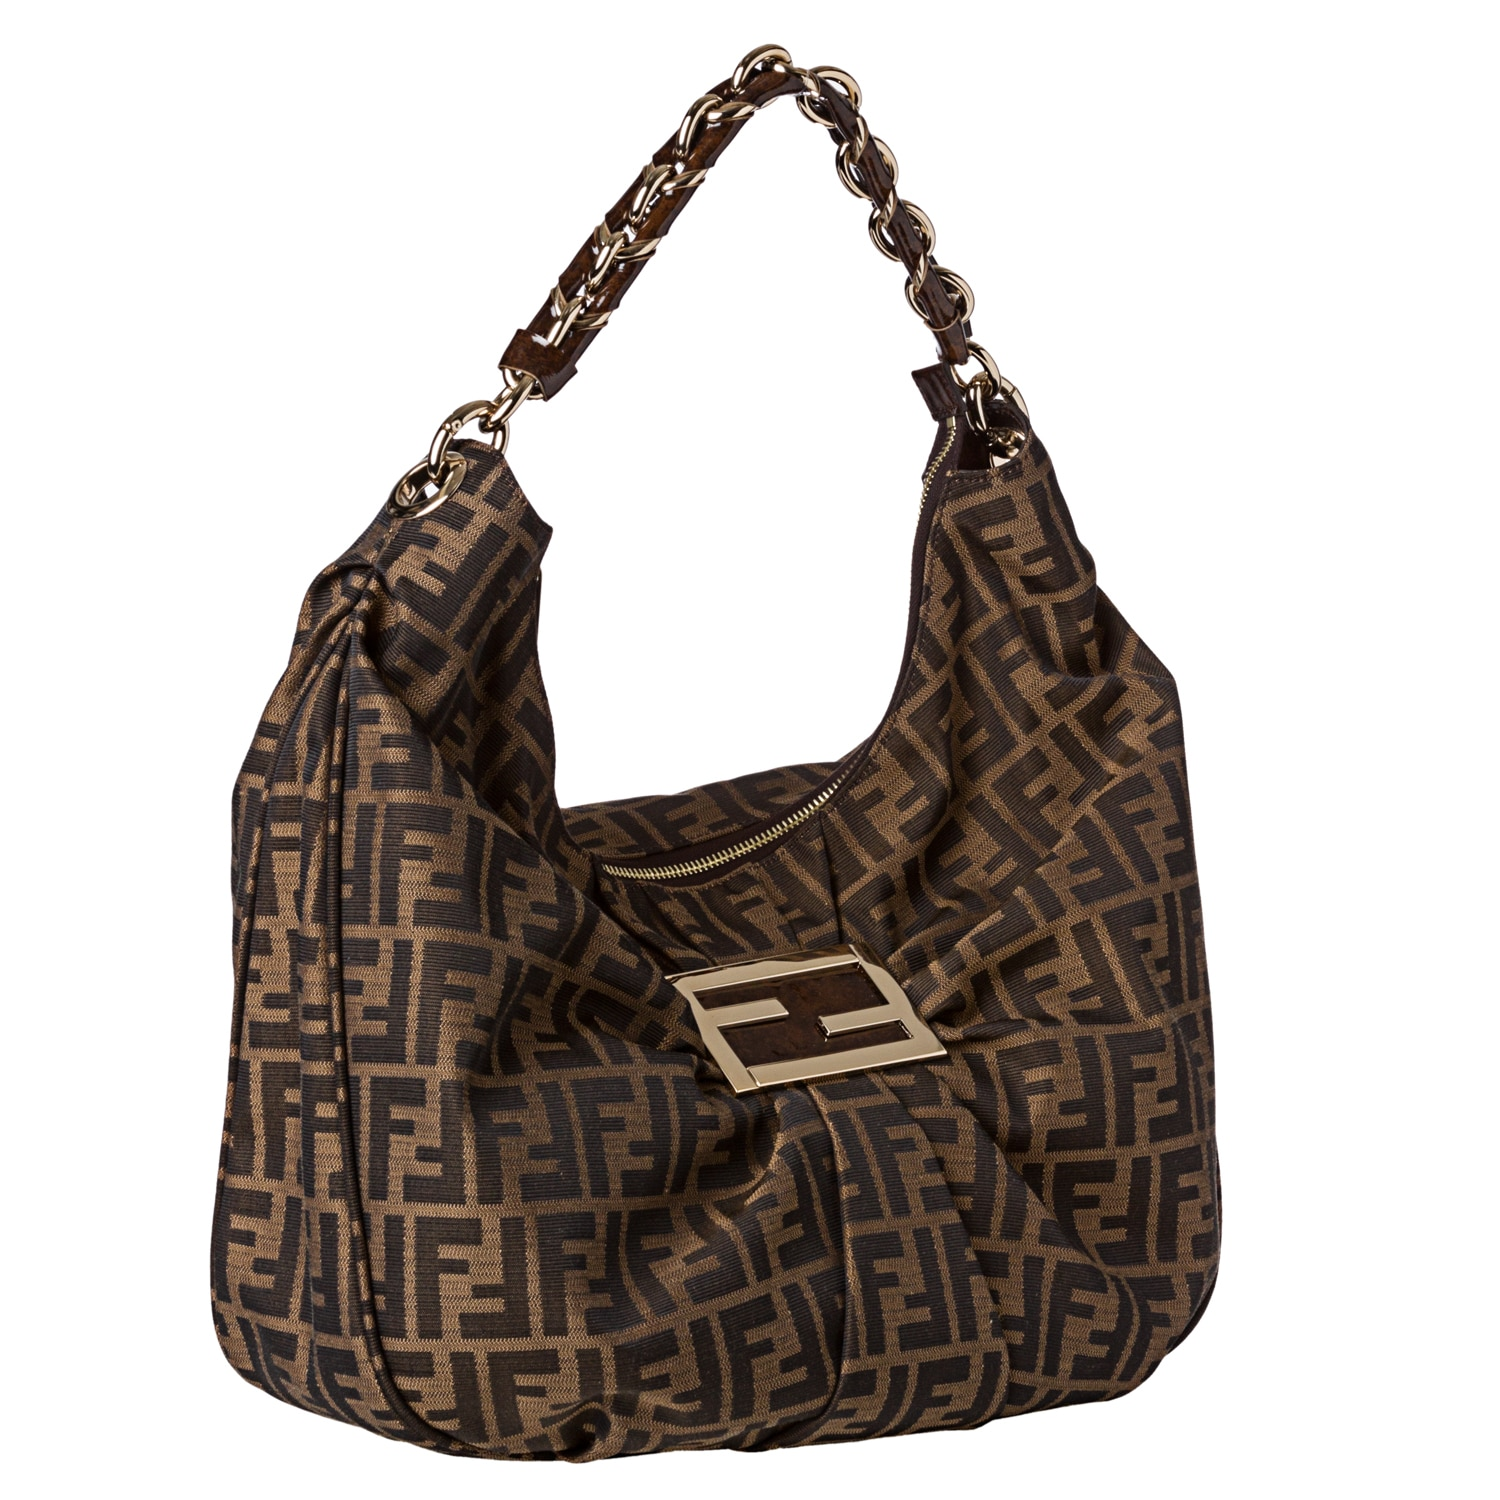 Fendi Peekaboo Handbag Canvas Large biVp7hBf